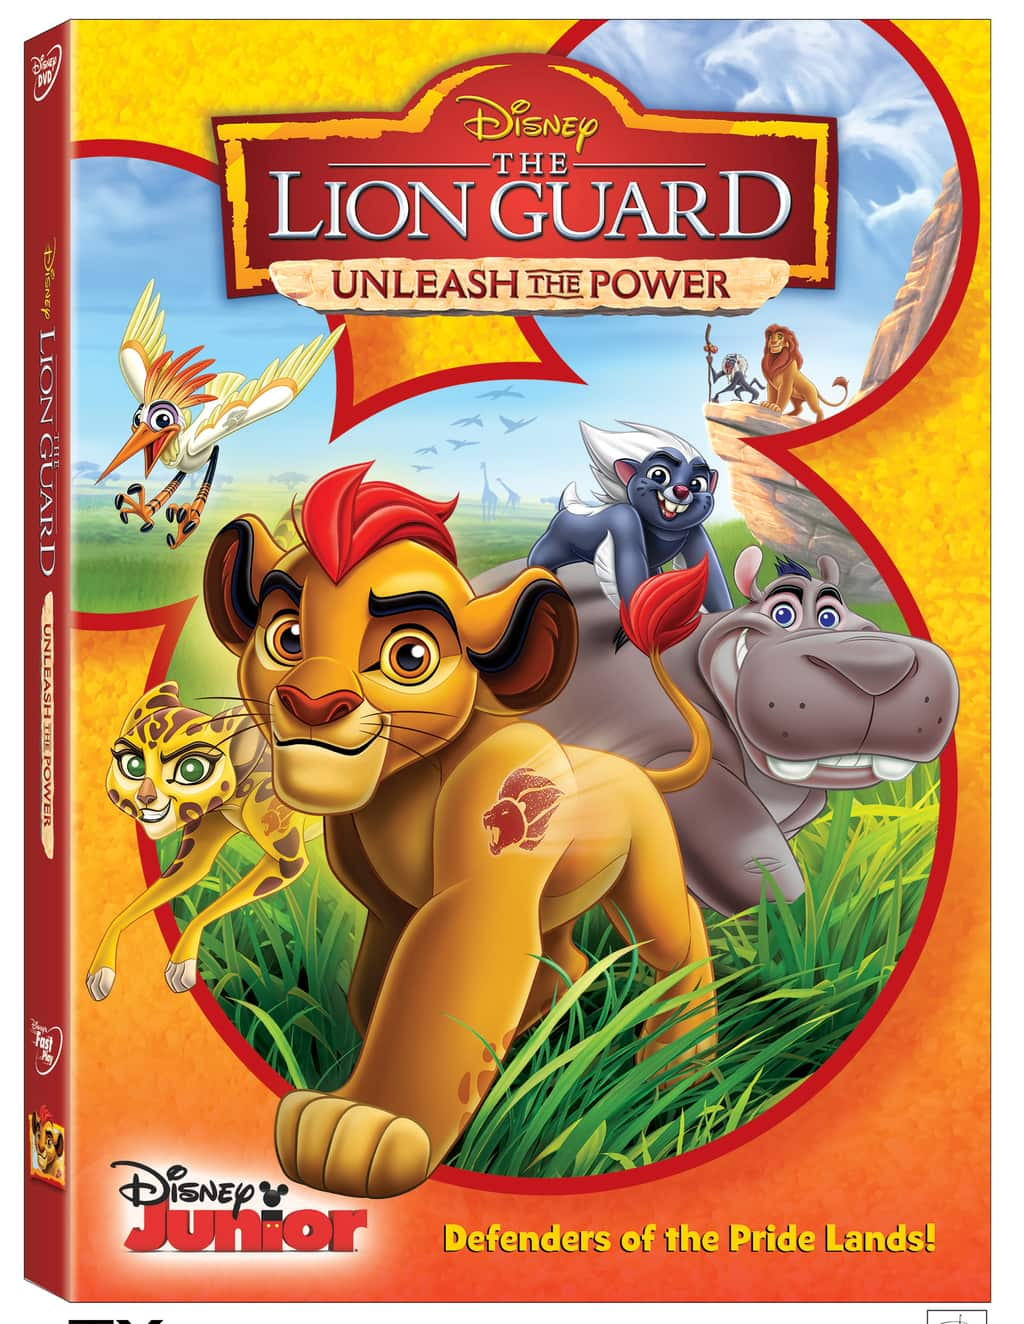 The Lion Guard – Unleash the Power